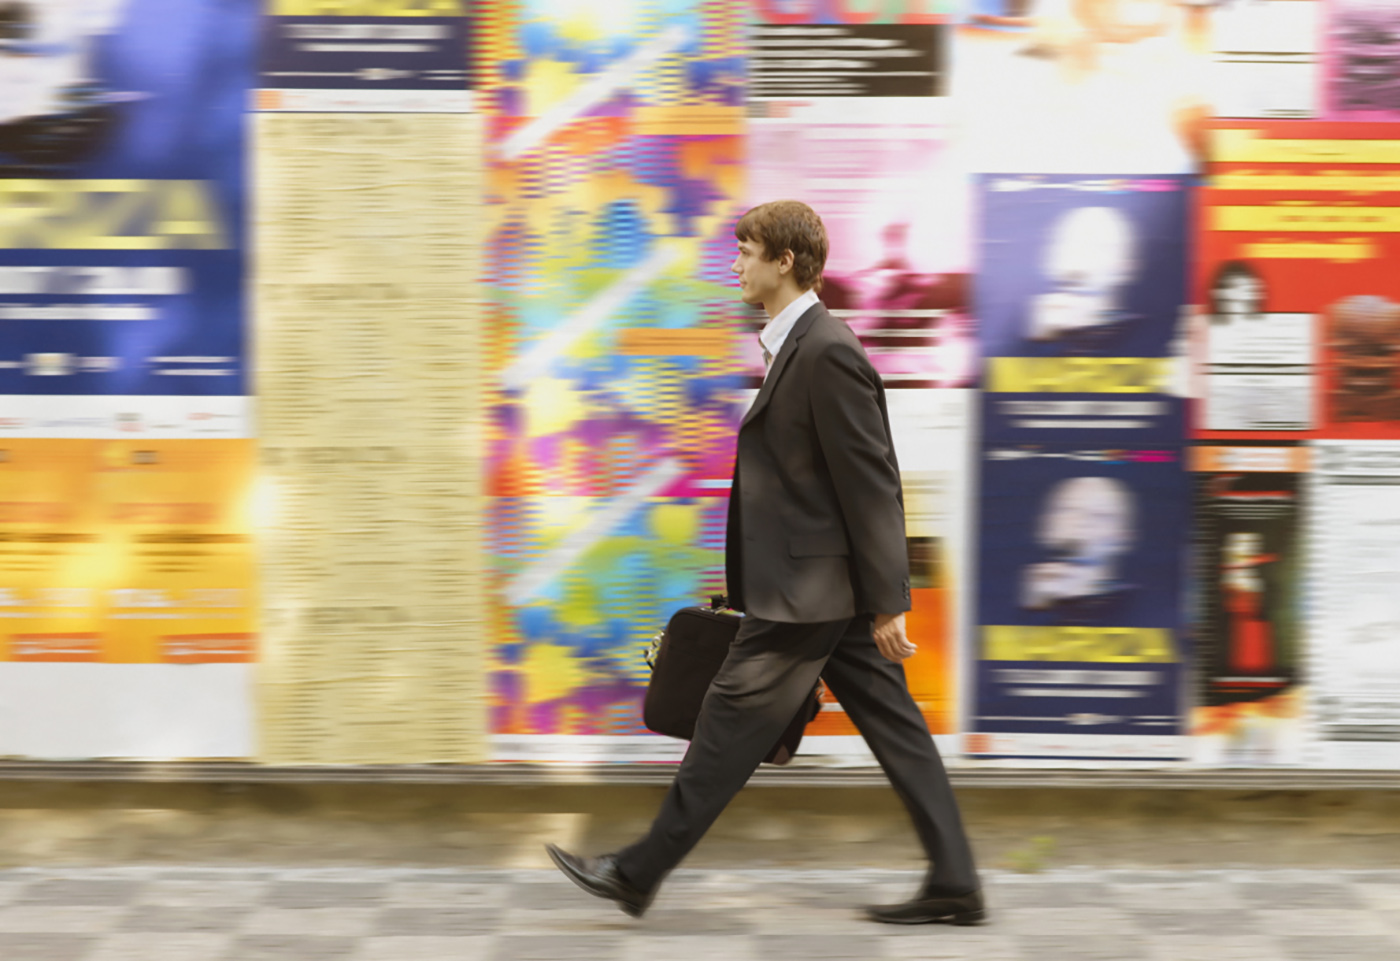 Man walking past colourful posters